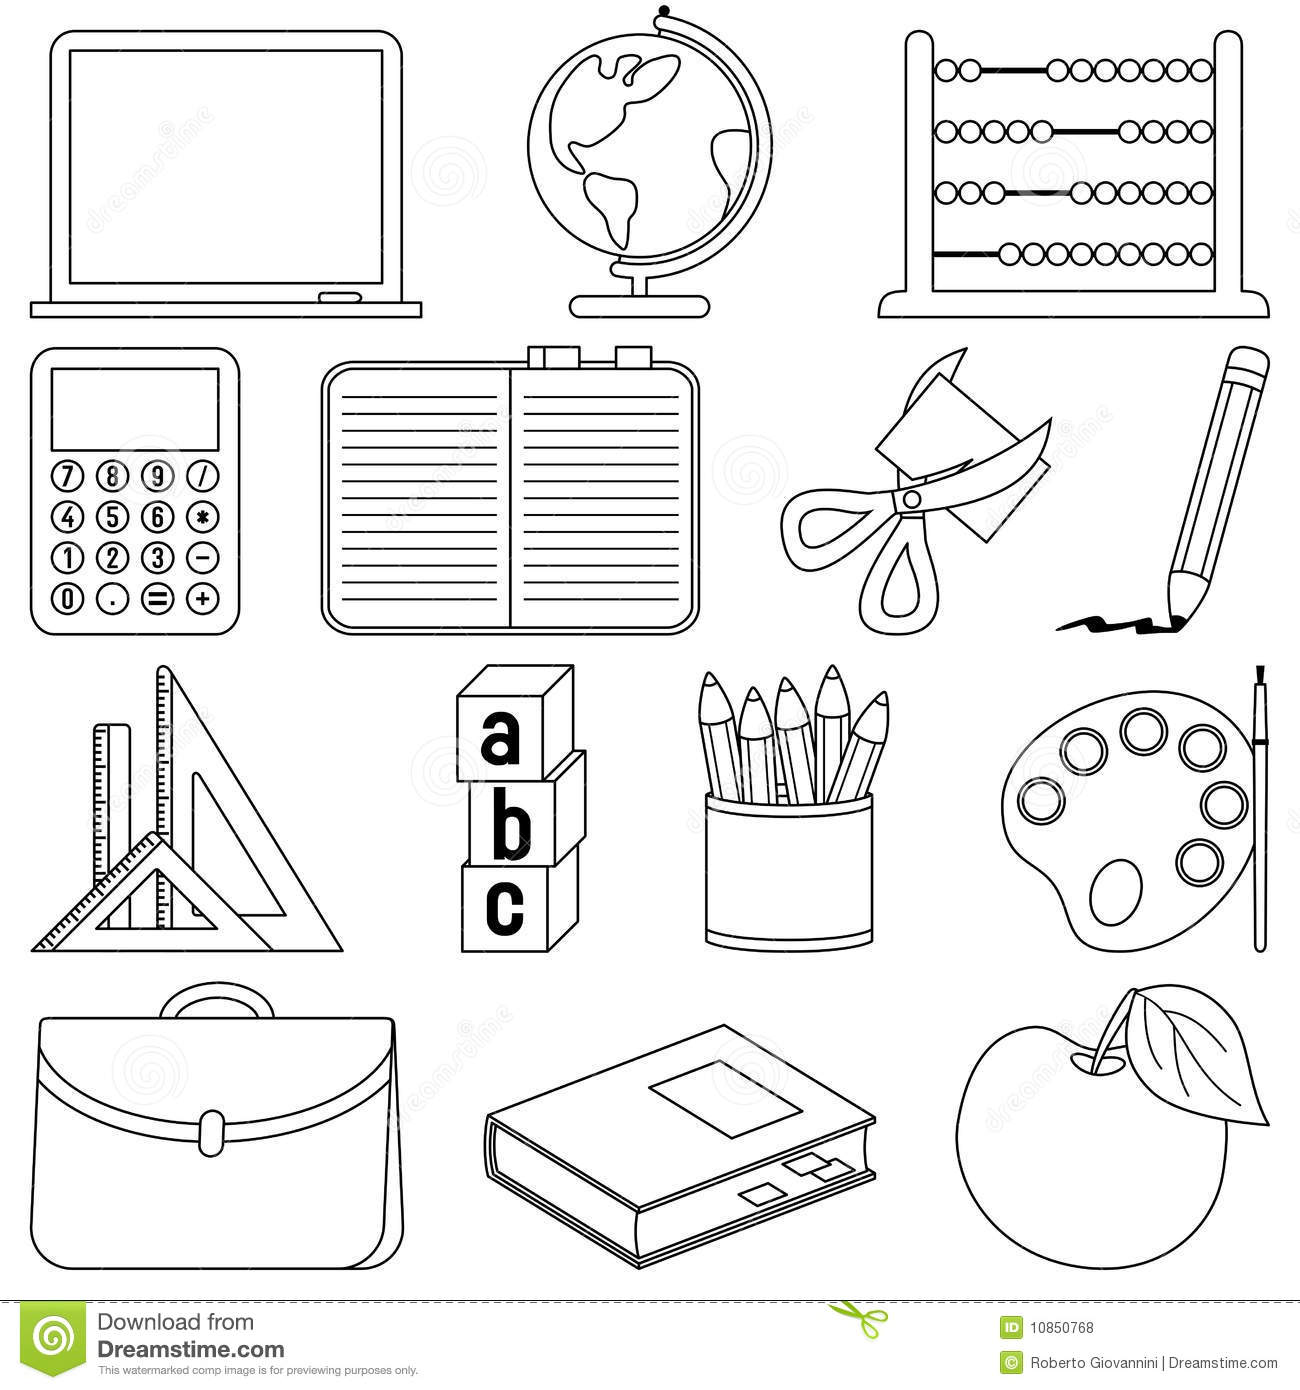 Coloring School Icons Stock Vector Illustration Of Contour